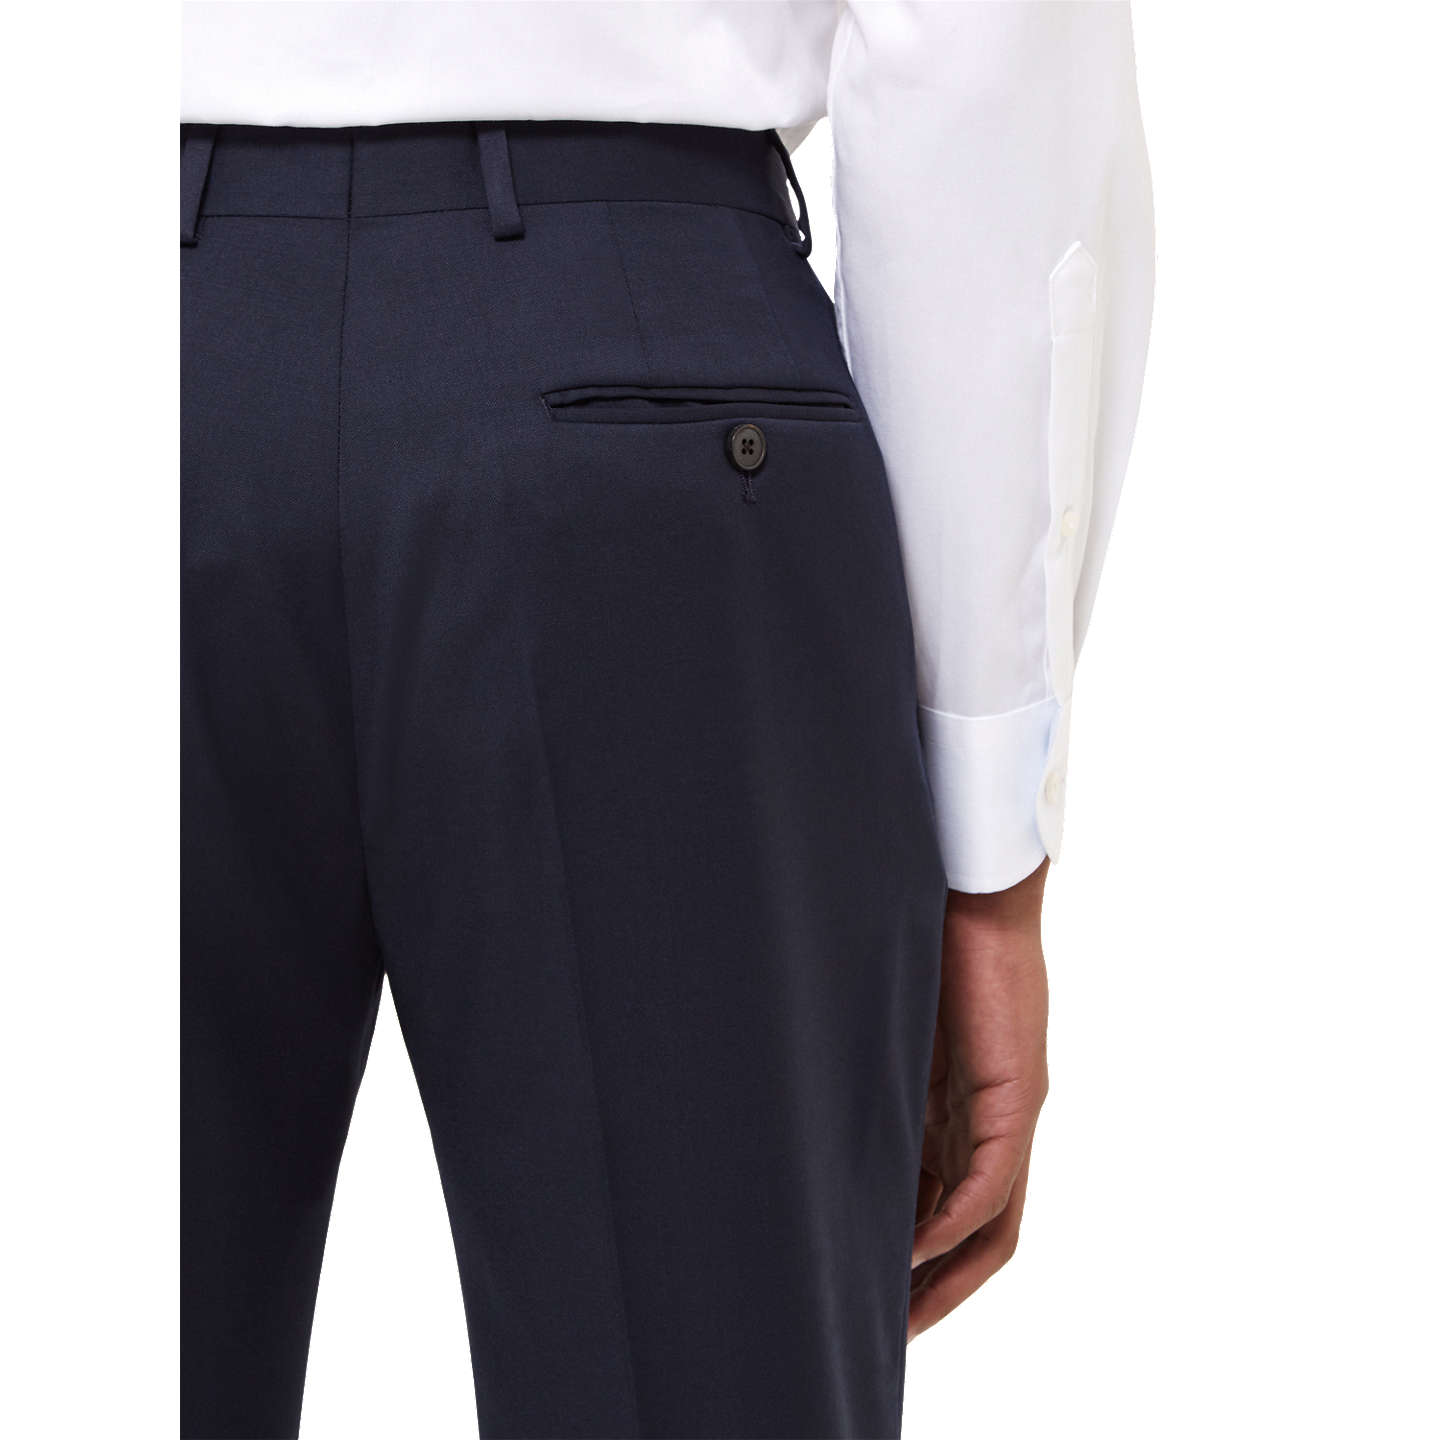 BuyJaeger Wool Twill Slim Fit Suit Trousers, Navy, 30R Online at johnlewis.com